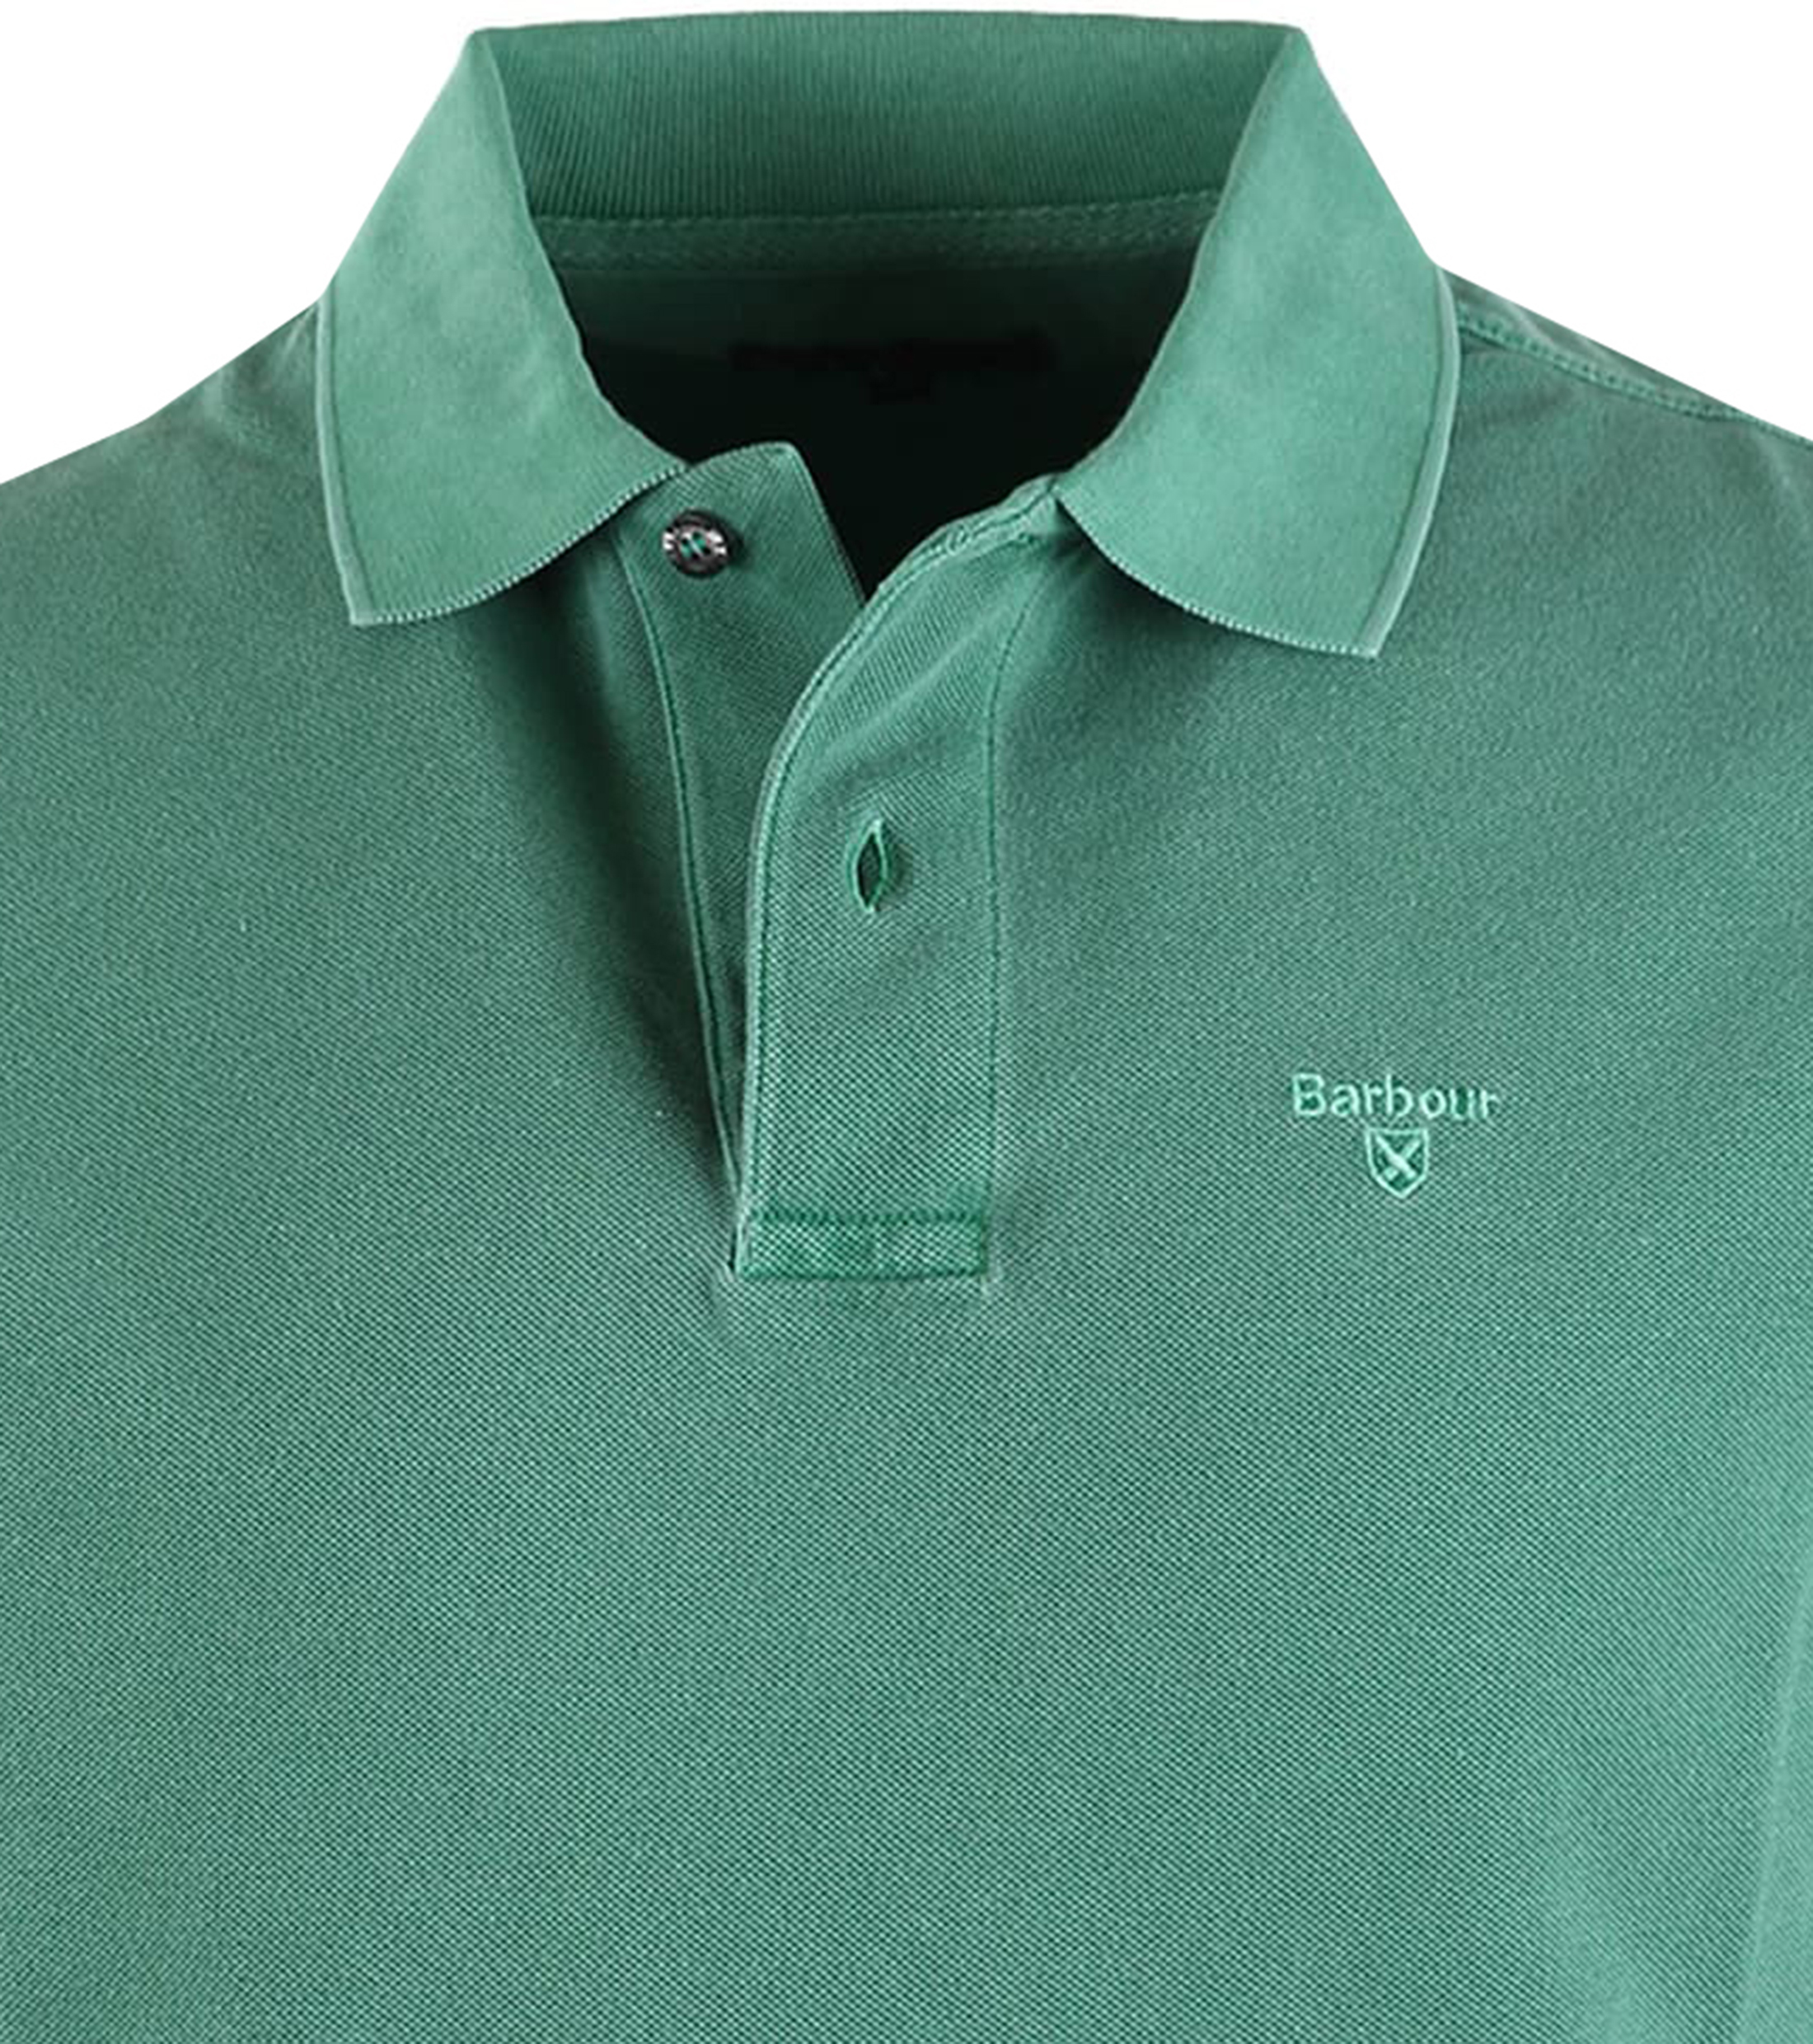 Barbour Washed Polo Groen foto 1